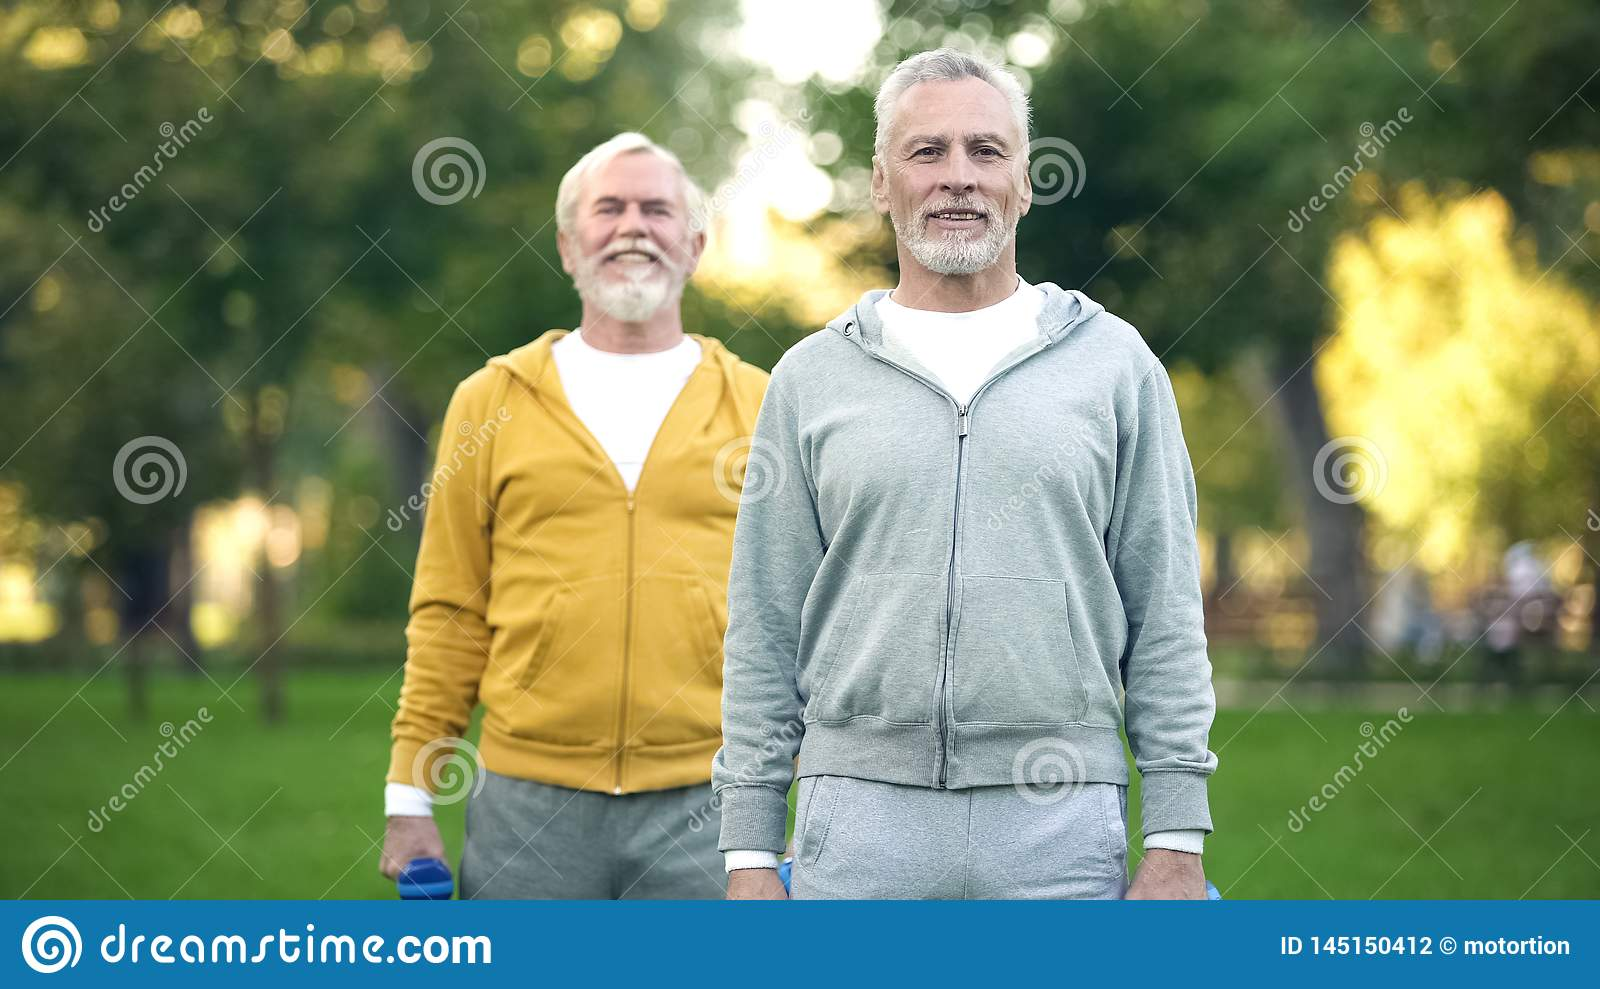 Senior male friends training in park, pumping muscles lifting dumbbells, health